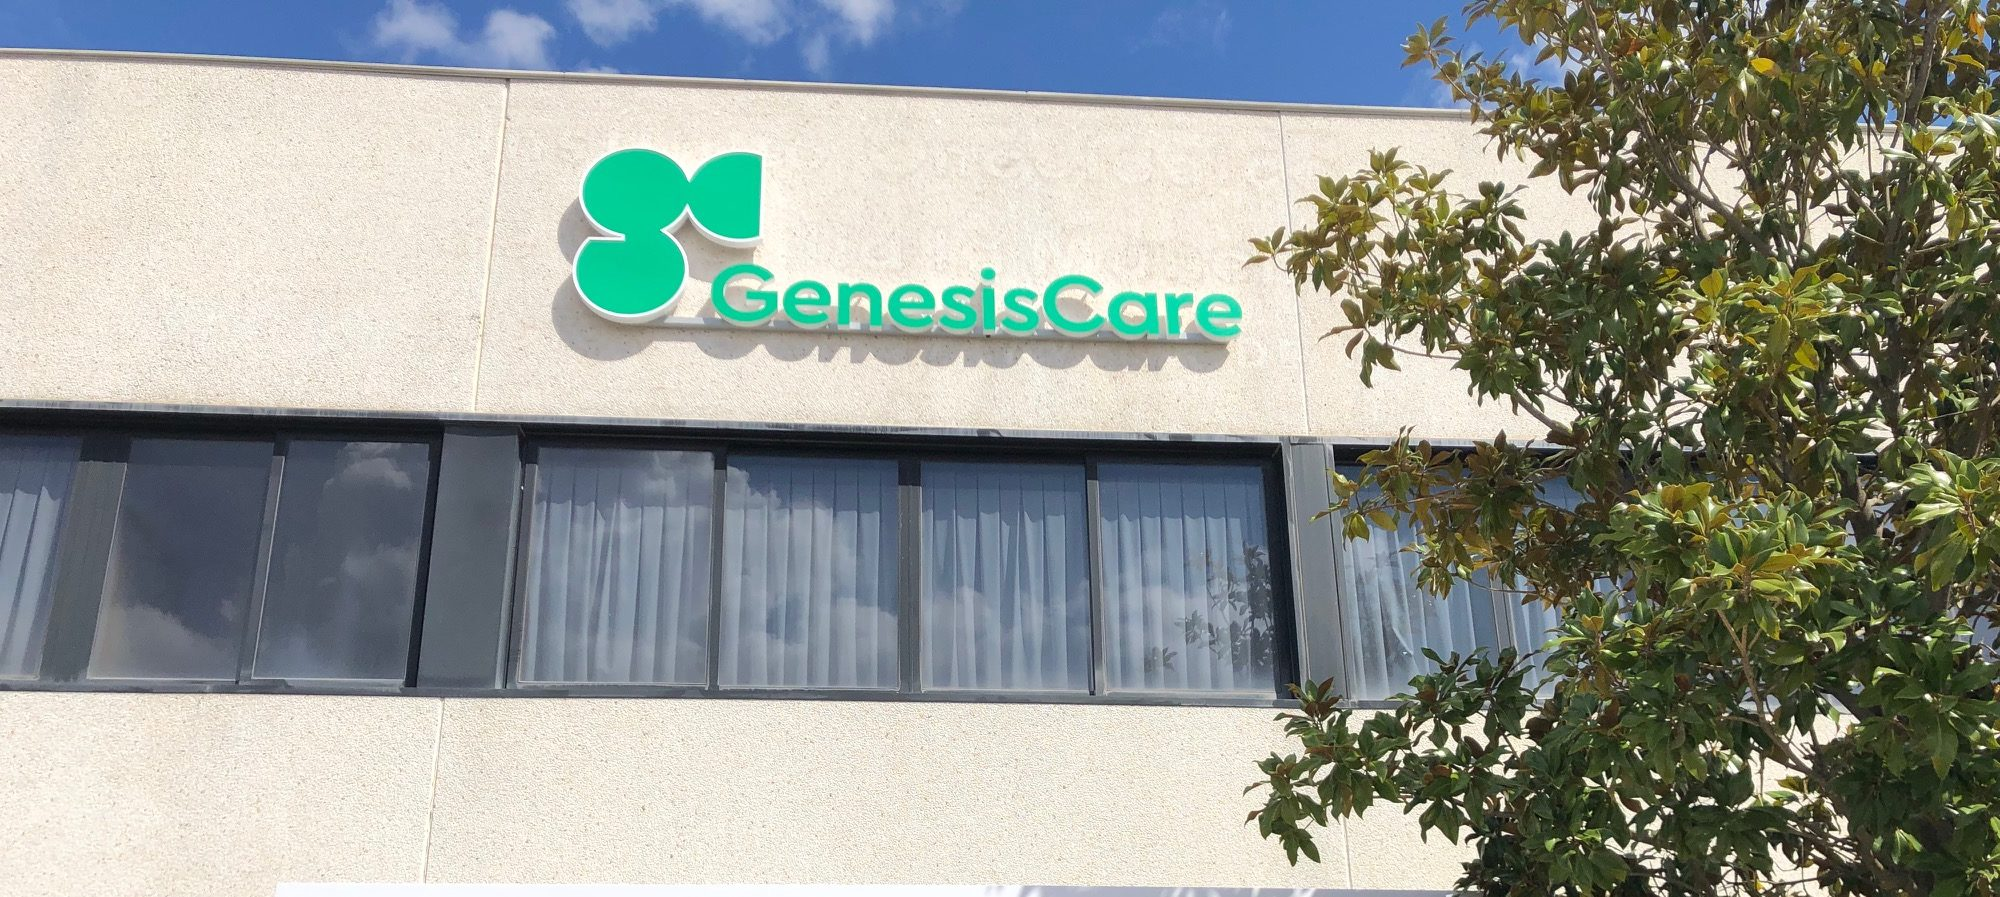 genesis care logo signage on side of building